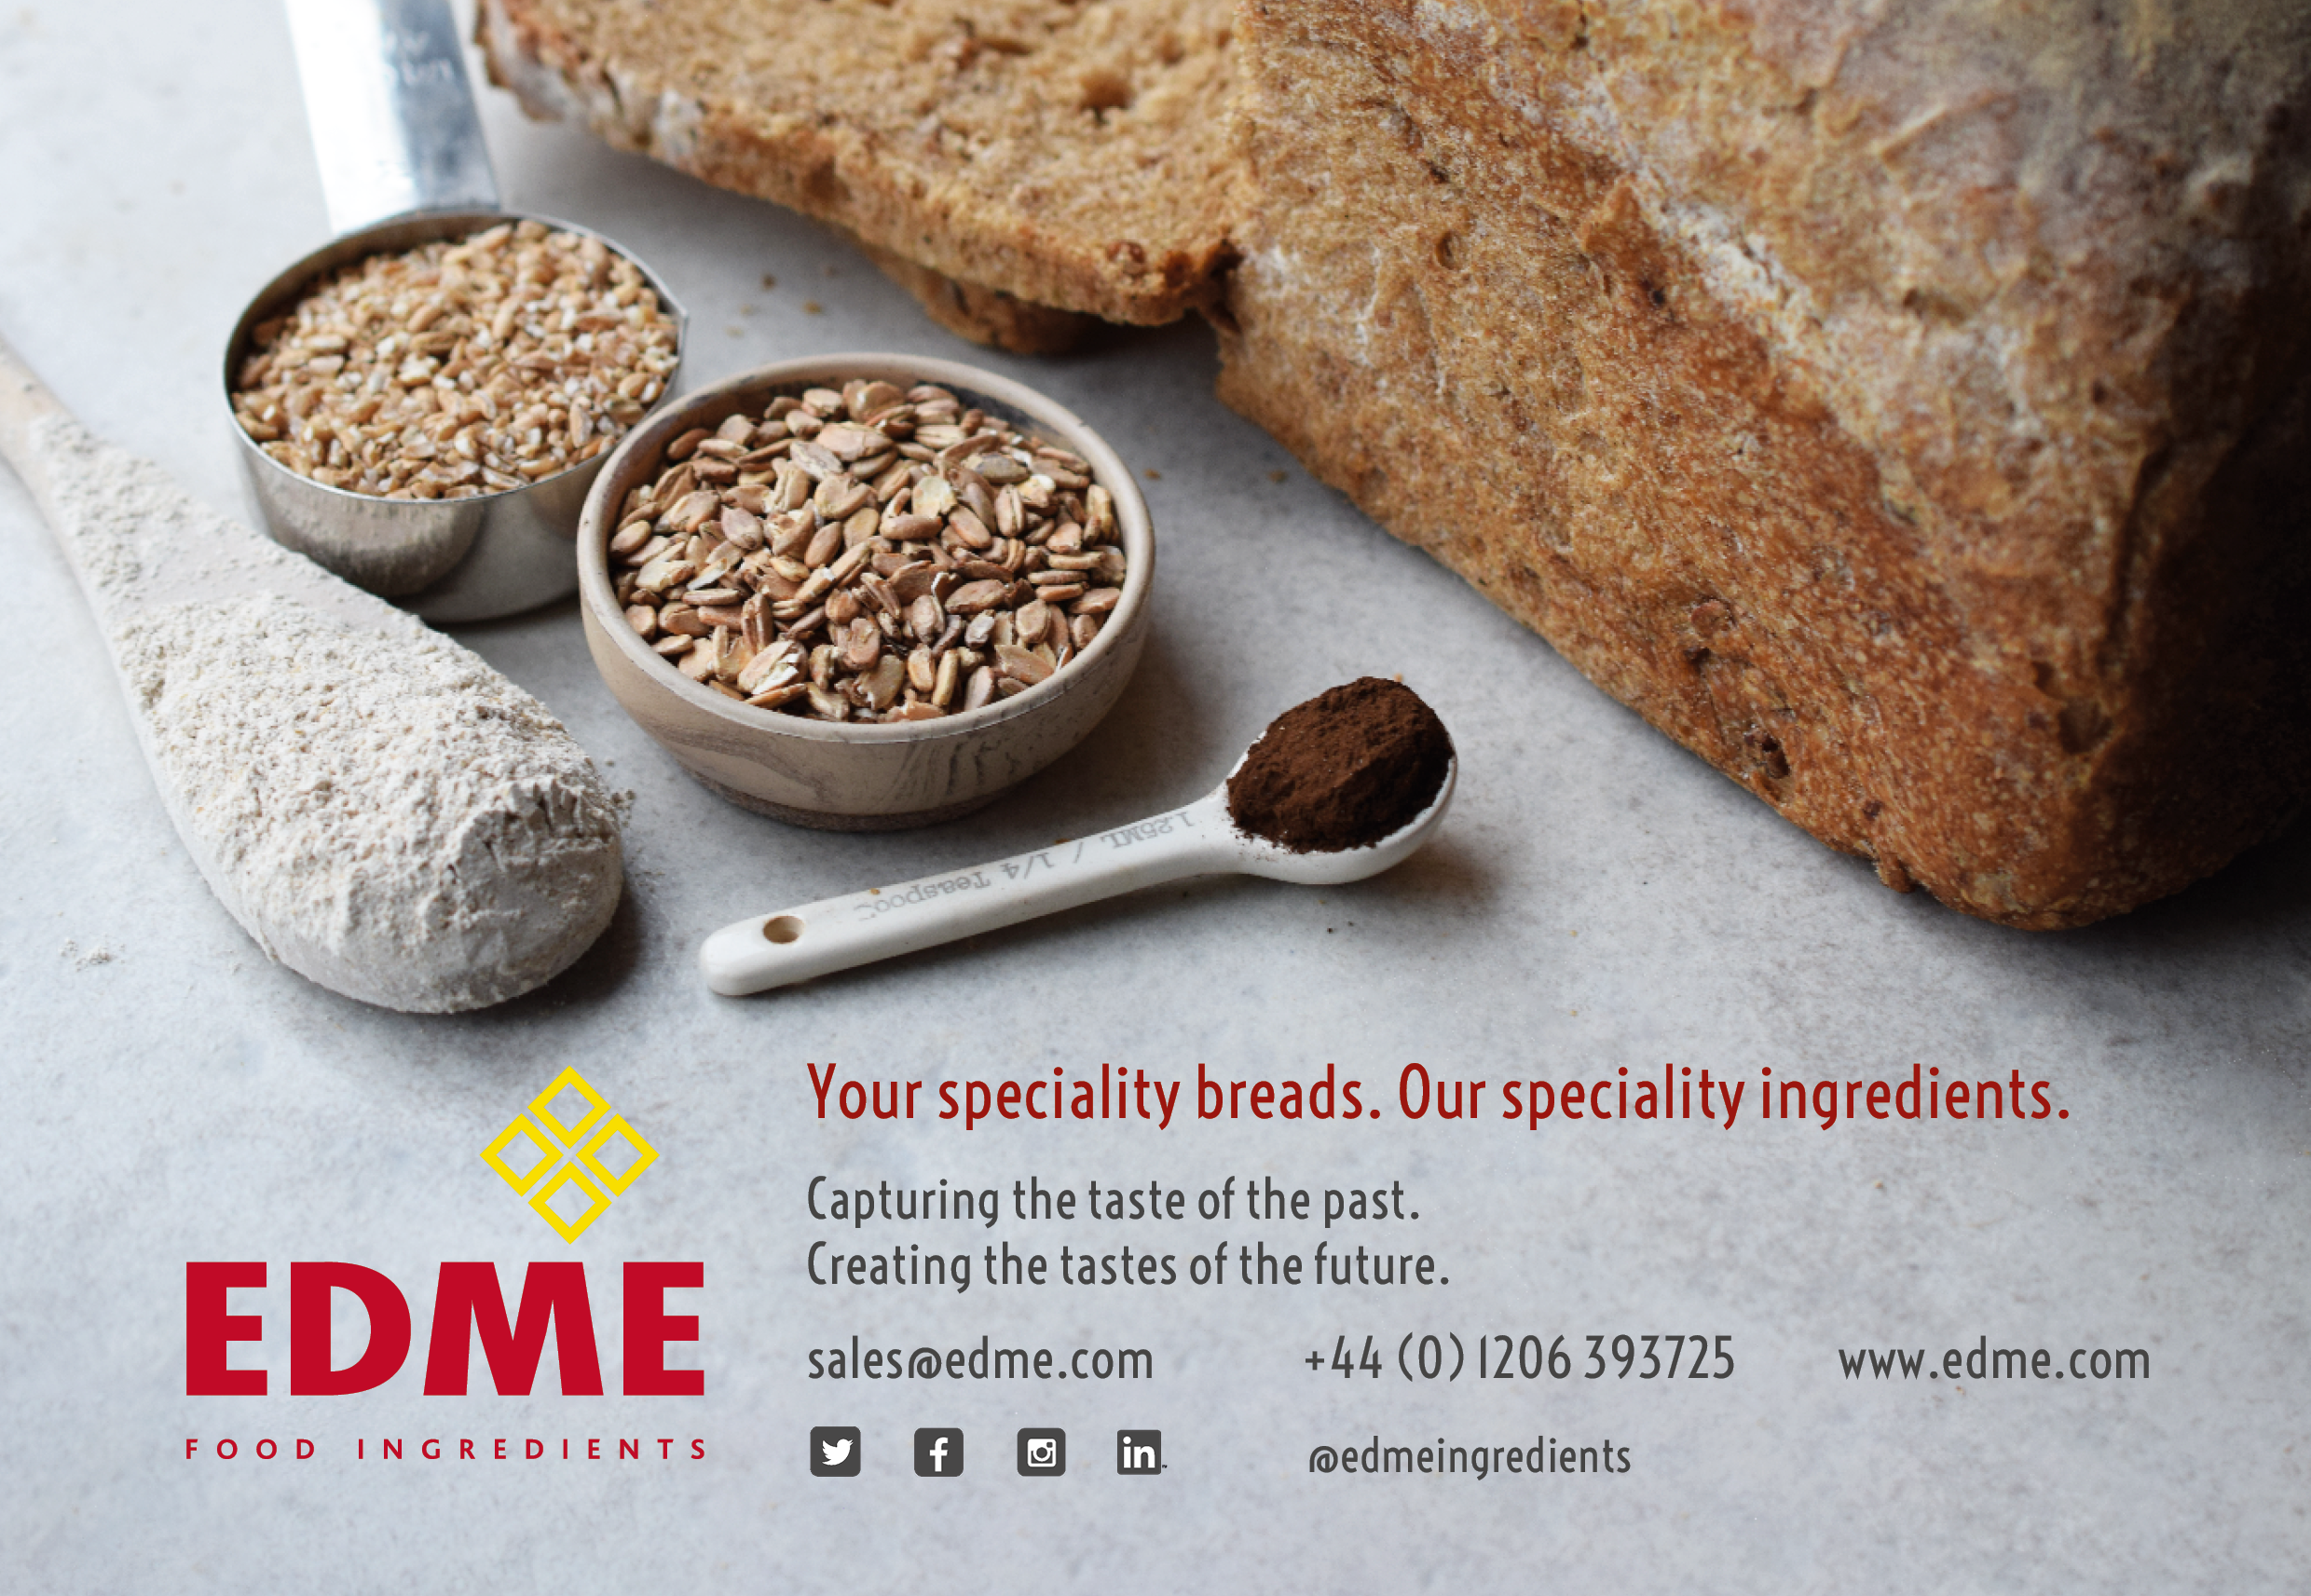 EDME Speciality Breads for British Baker, fv.png